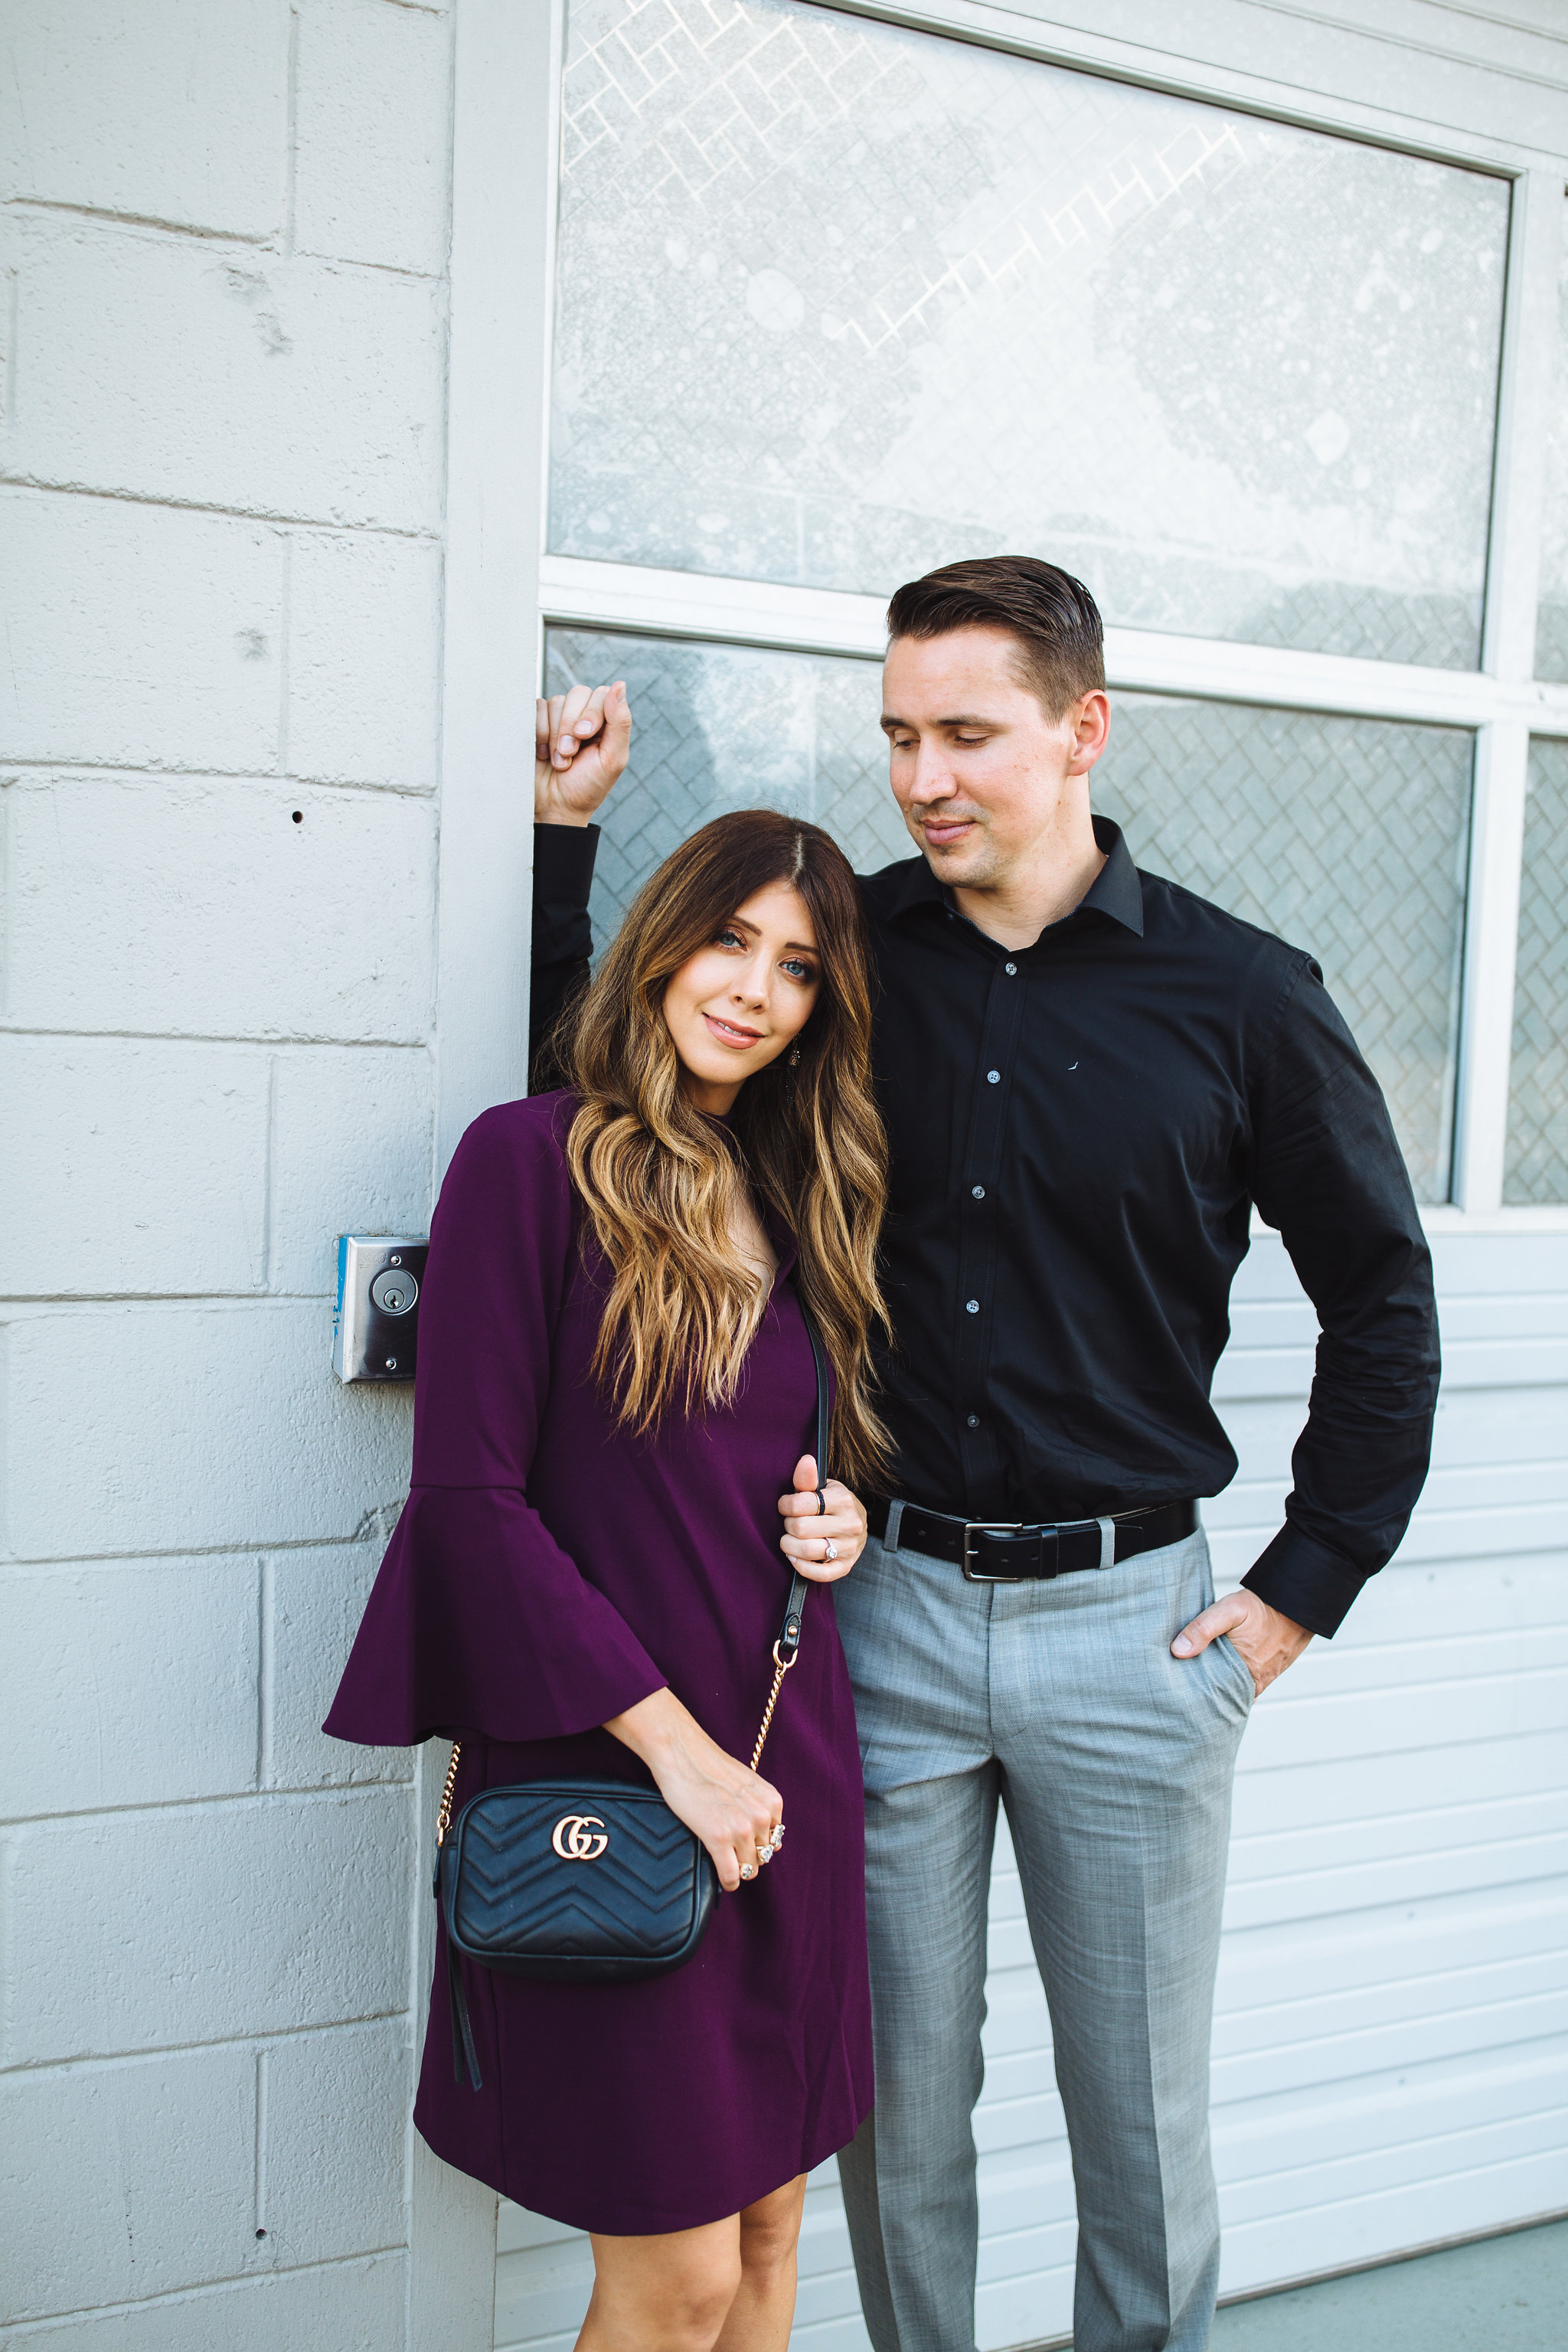 Nordstrom, Ted Baker Menswear, Couples Looks, Fall Fashion